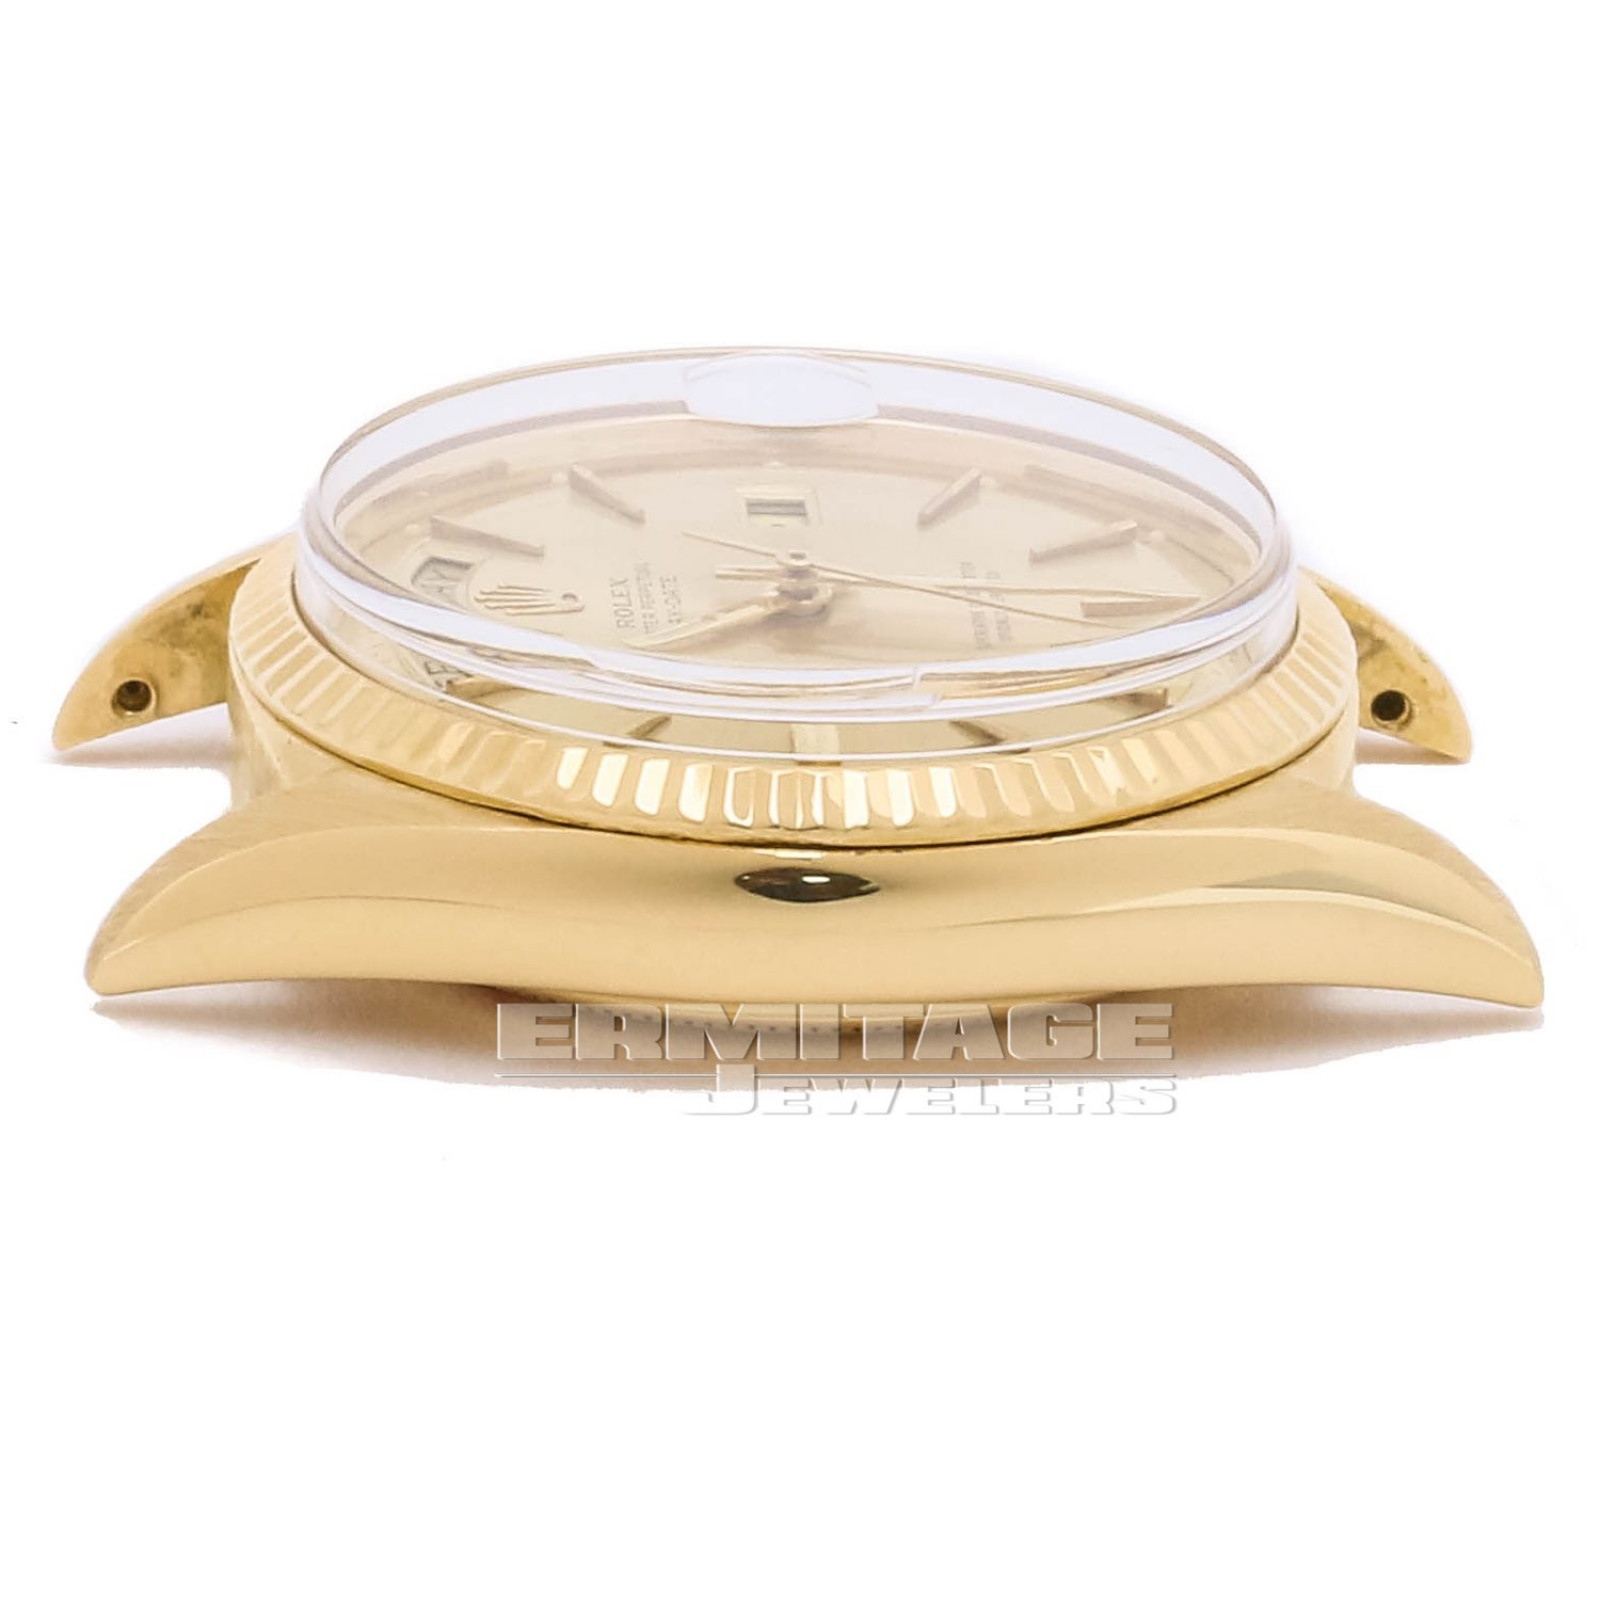 Vintage Rolex 1803 36 mm Yellow Gold on President, Fluted Bezel